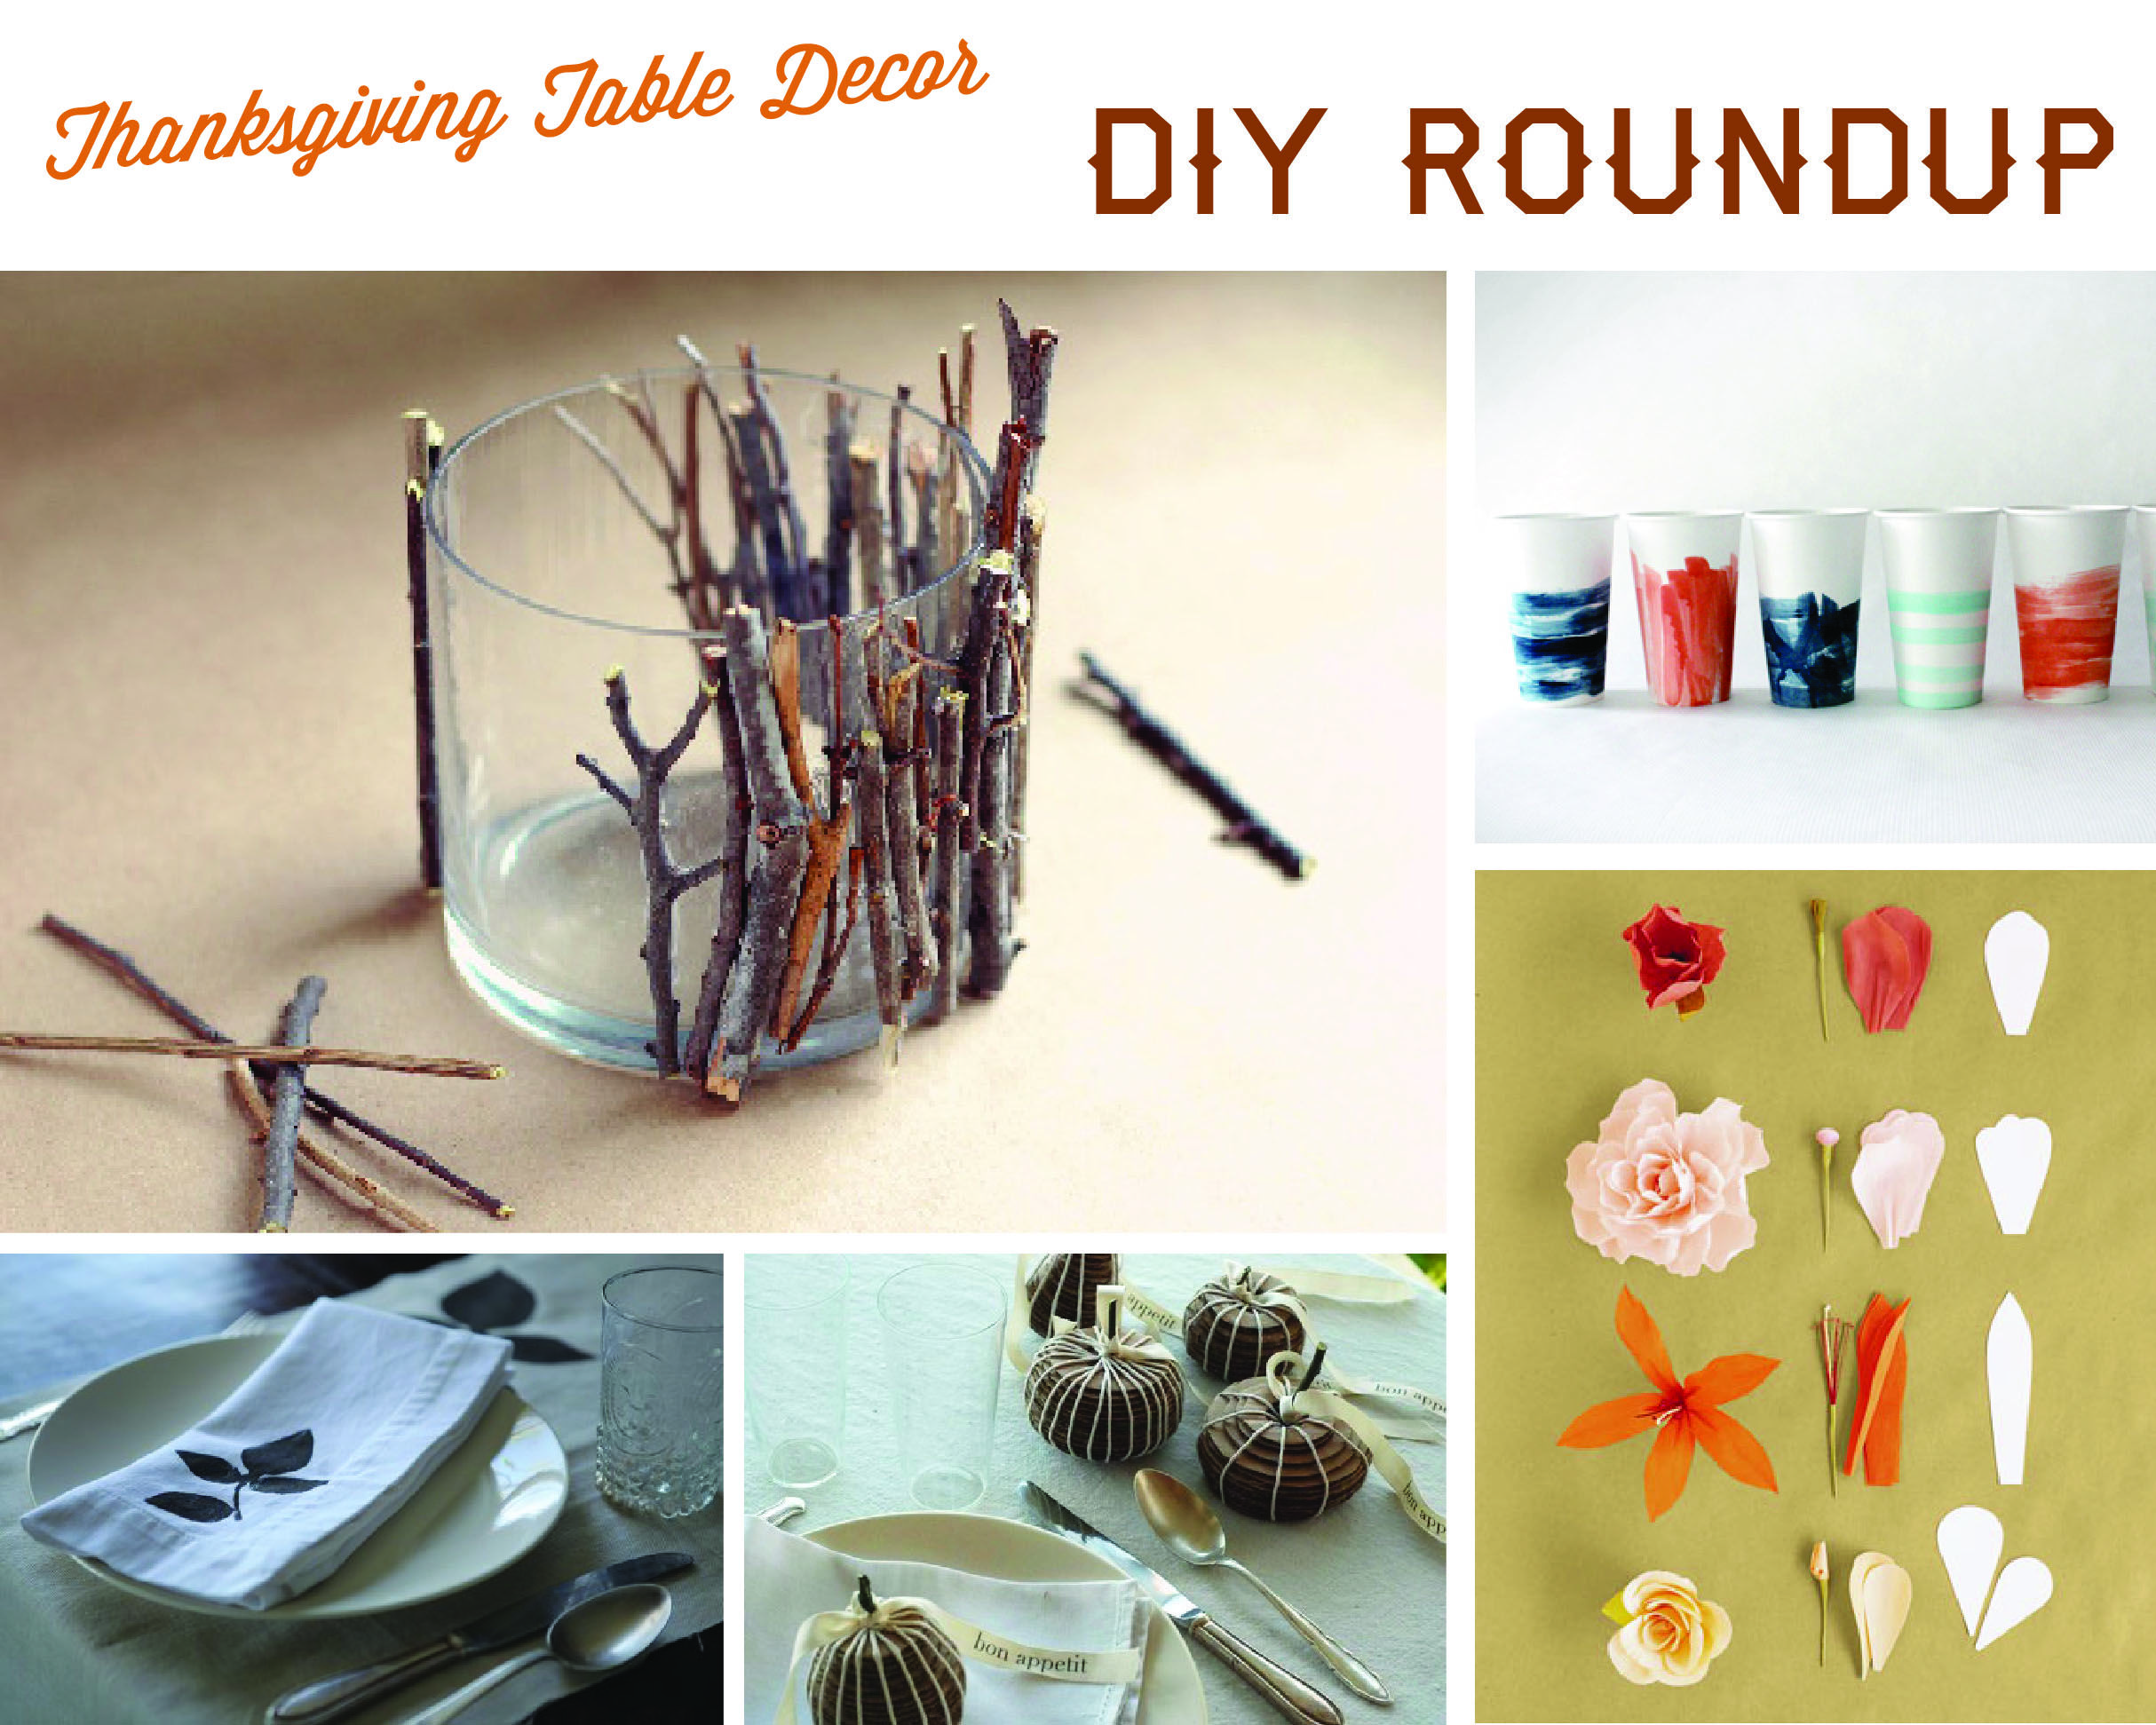 Pinterest Diy Home Decor: Thanksgiving DIY Roundup + Renegade Craft Fair By Margo